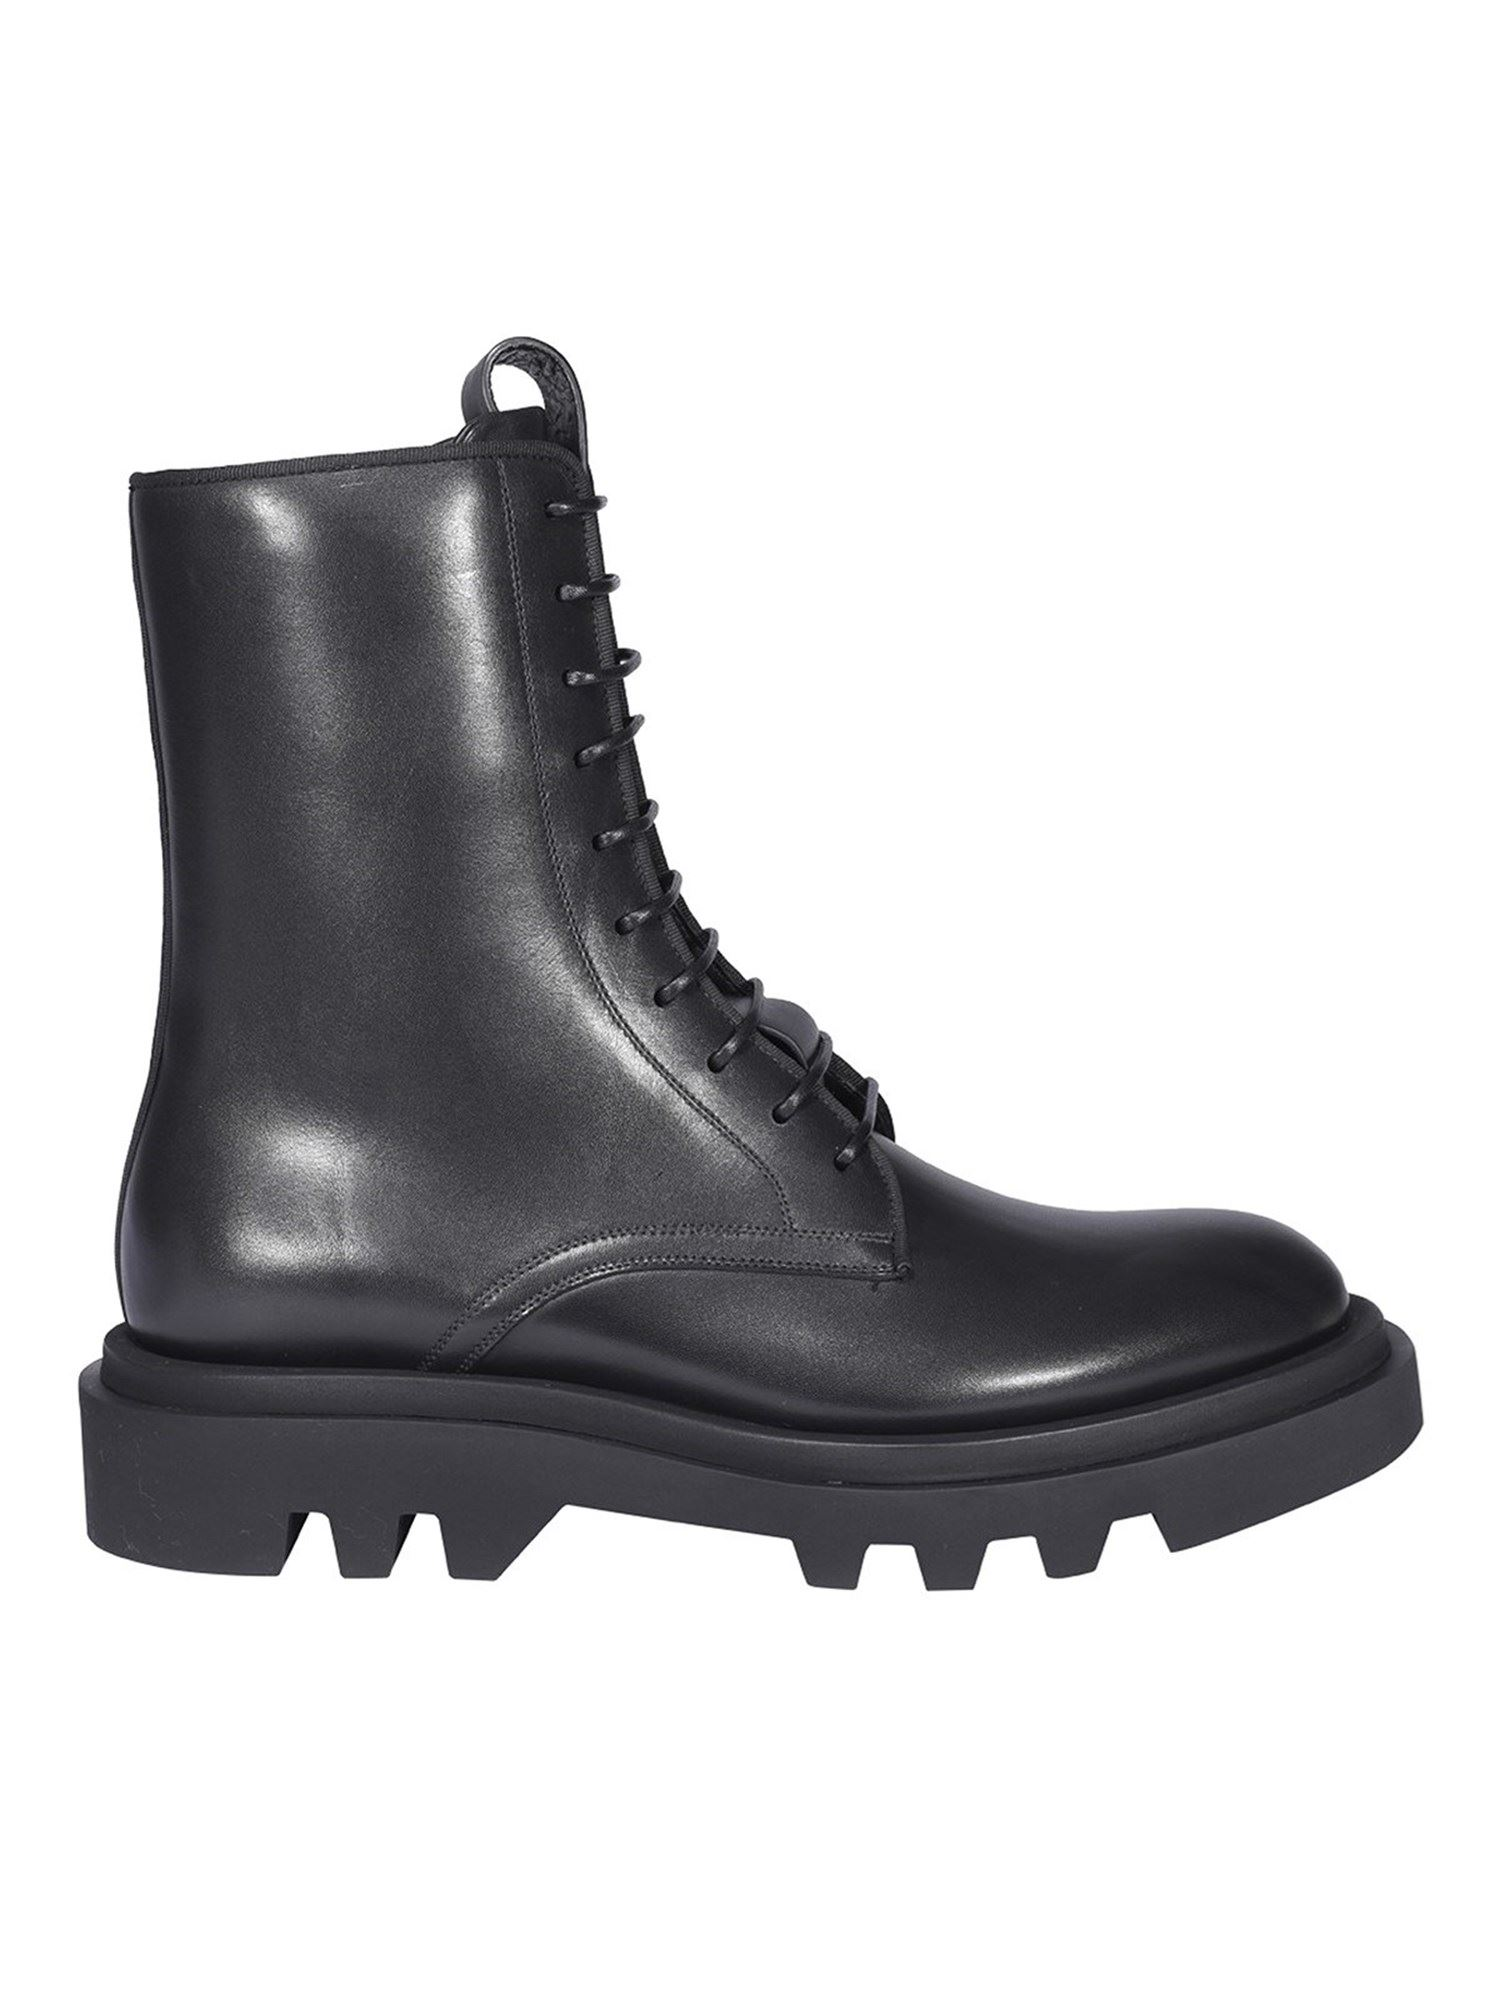 Givenchy BRUSHED LEATHER BOOTS IN BLACK